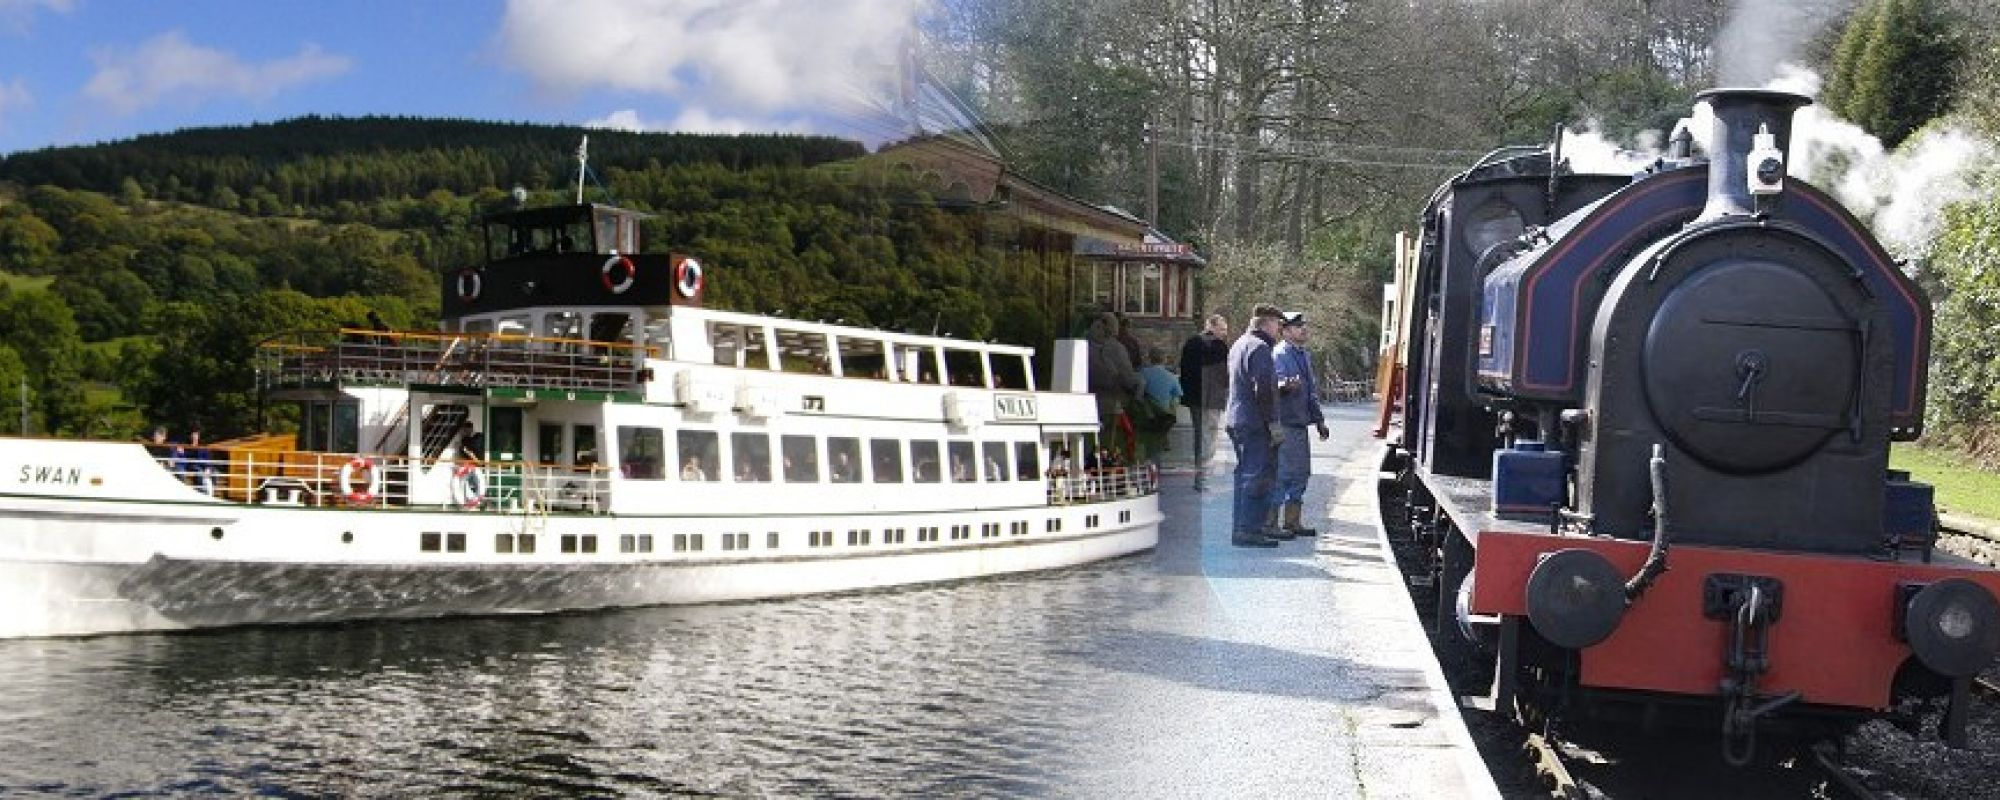 Combined ticketing with Windermere Lake Cruises Autumn, Winter and Early Spring